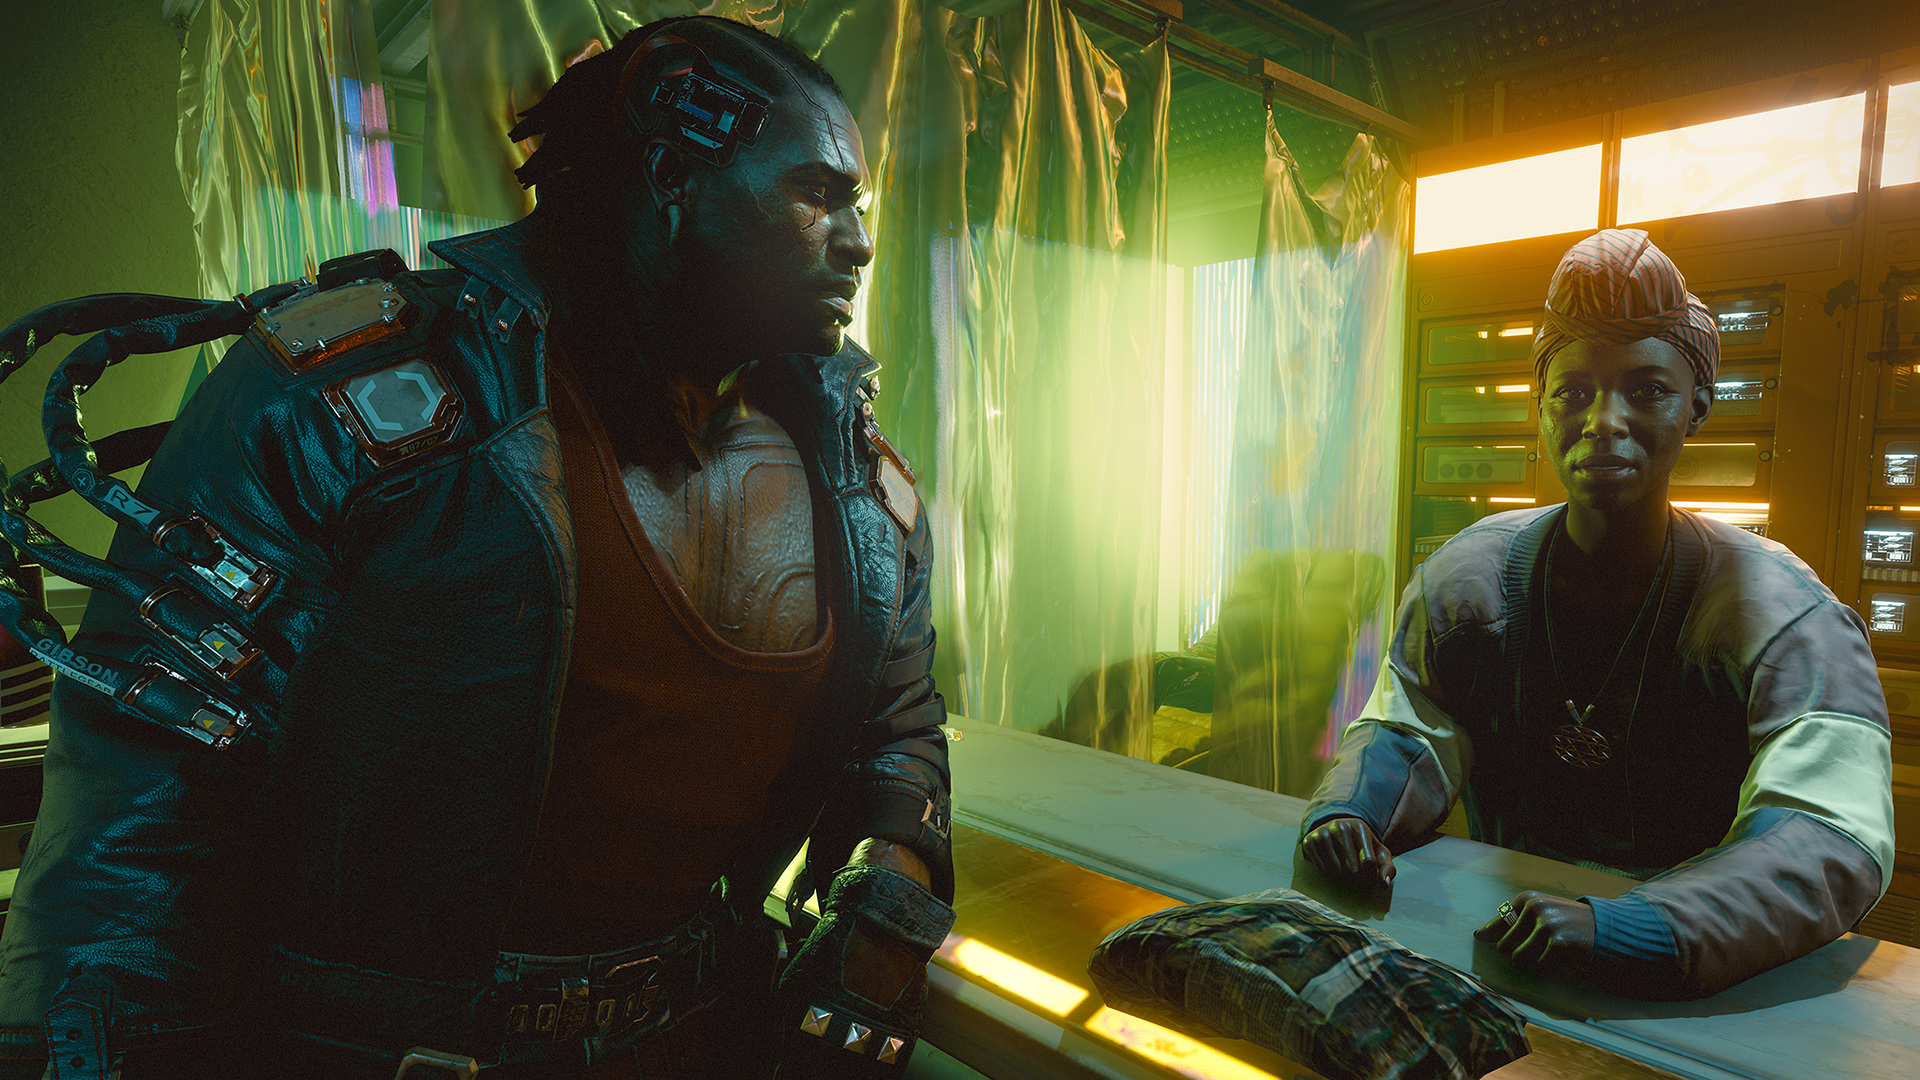 Cyberpunk 2077 Quest Director on The Witcher 3 Comparisons